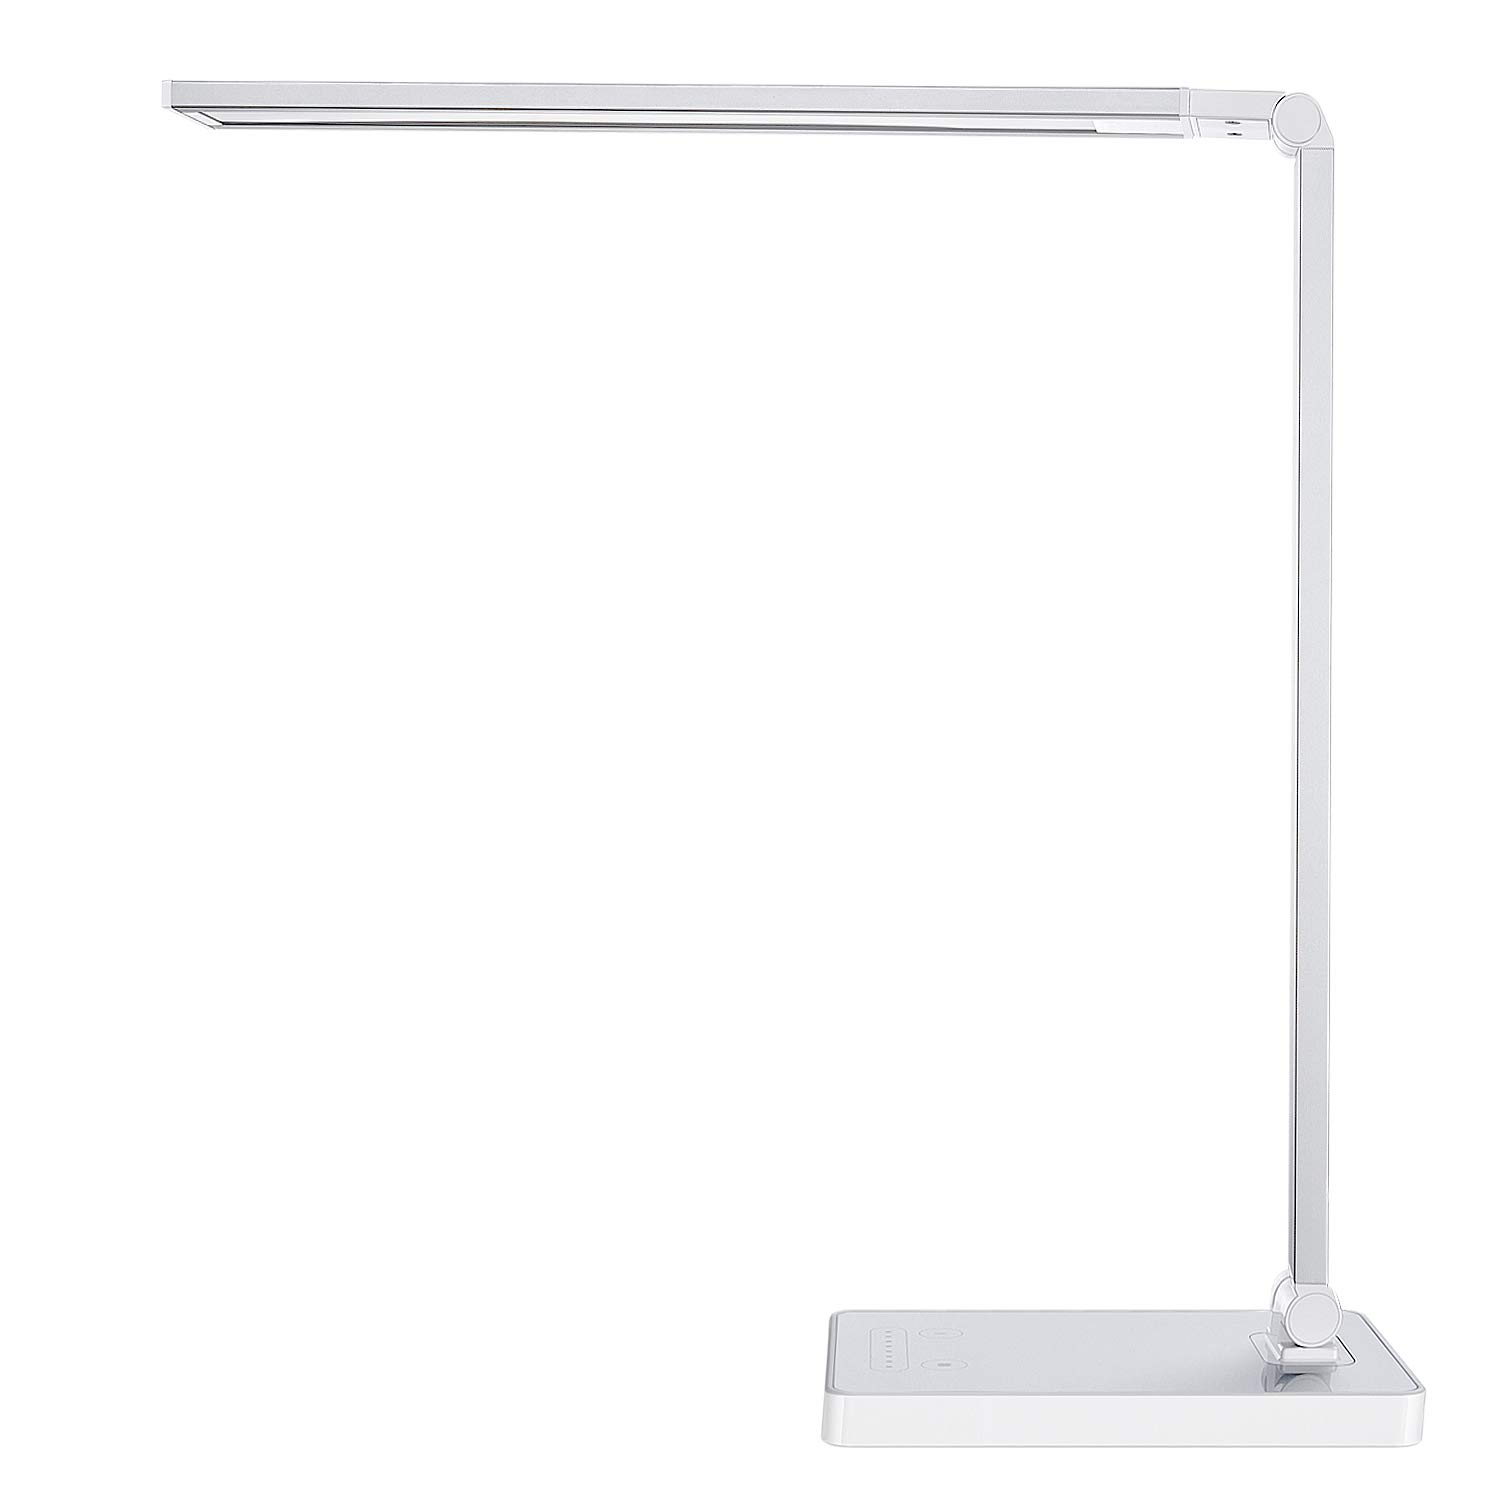 Phive Dimmable LED Desk Lamp with Fast Charging USB Port, Touch Control, 8-Level Dimmer / 4 Lighting Modes, Aluminum Body, Eye-Care LED, Table Lamp for Bedroom/Reading / Study (Silver)